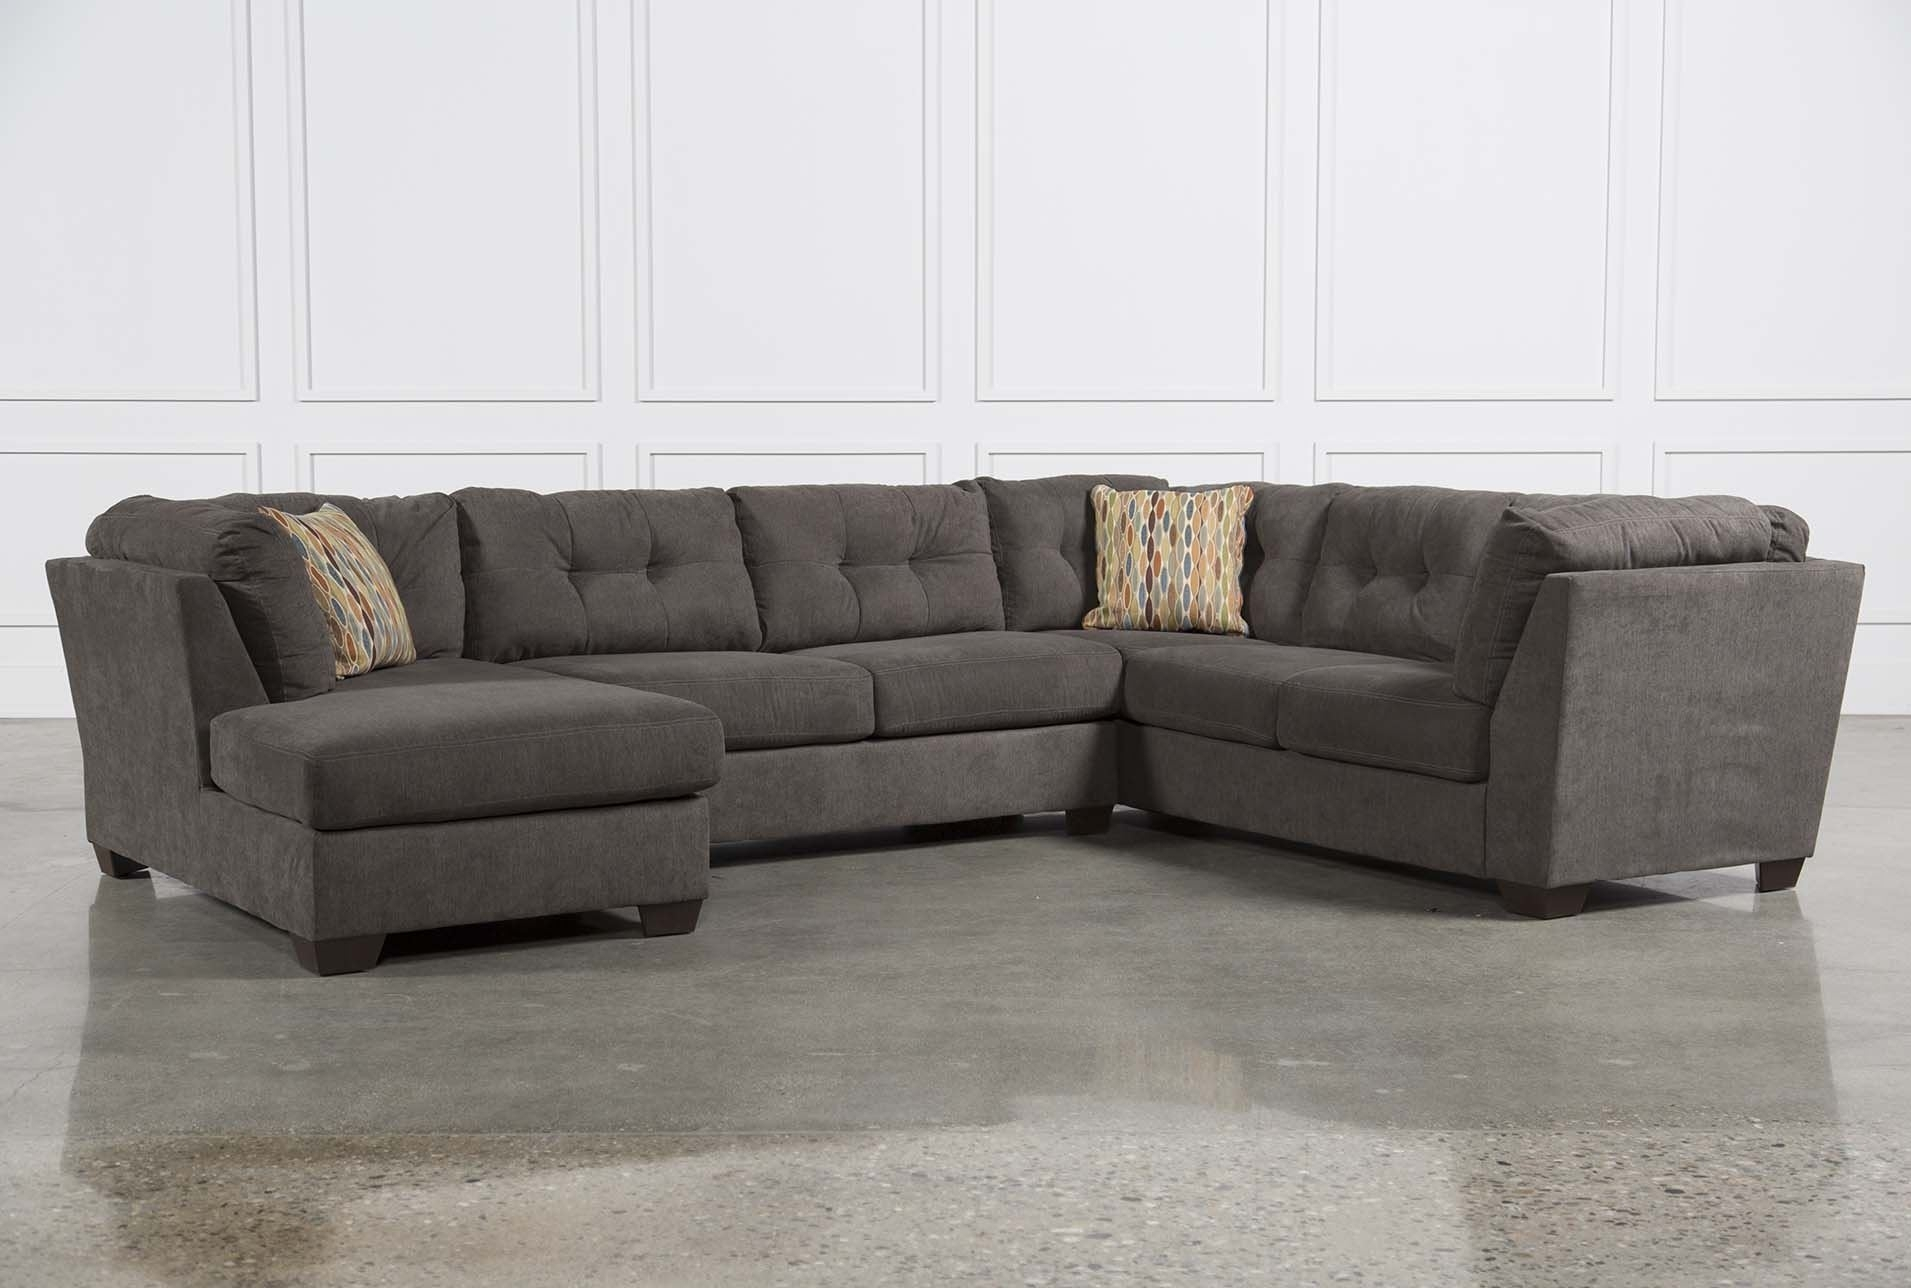 leather sectional sofa chicago turquoise throw 10 inspirations sofas at ideas